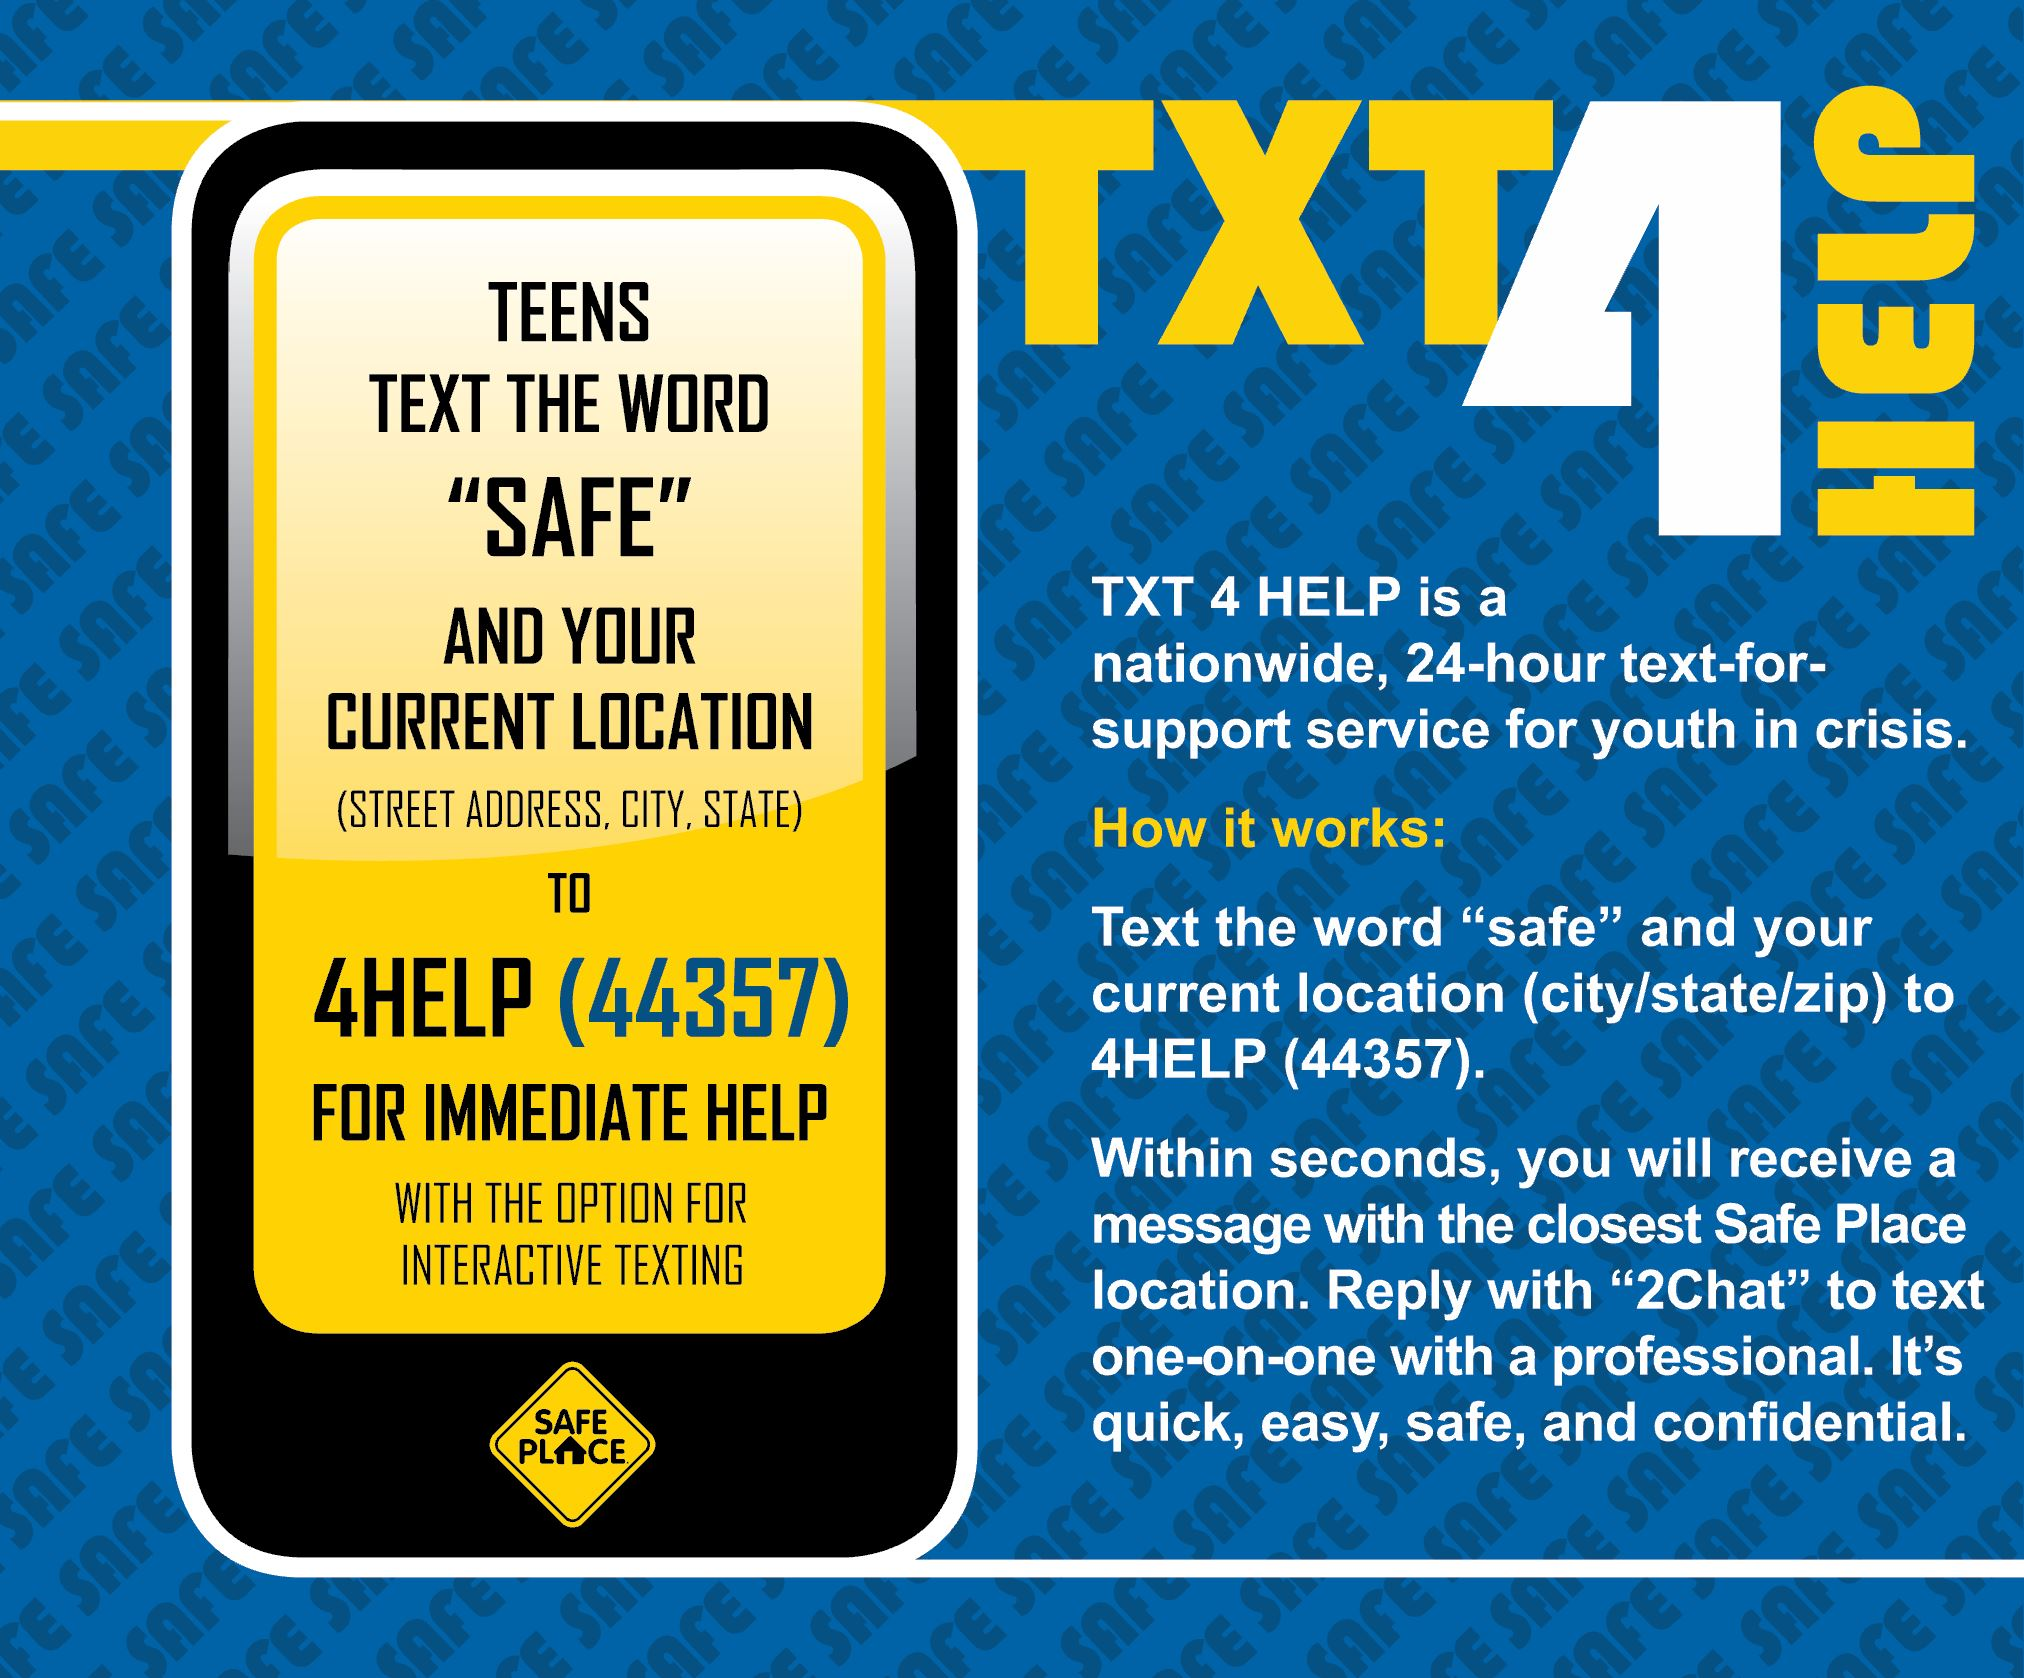 Does your teen know how to TXT 4 HELP?